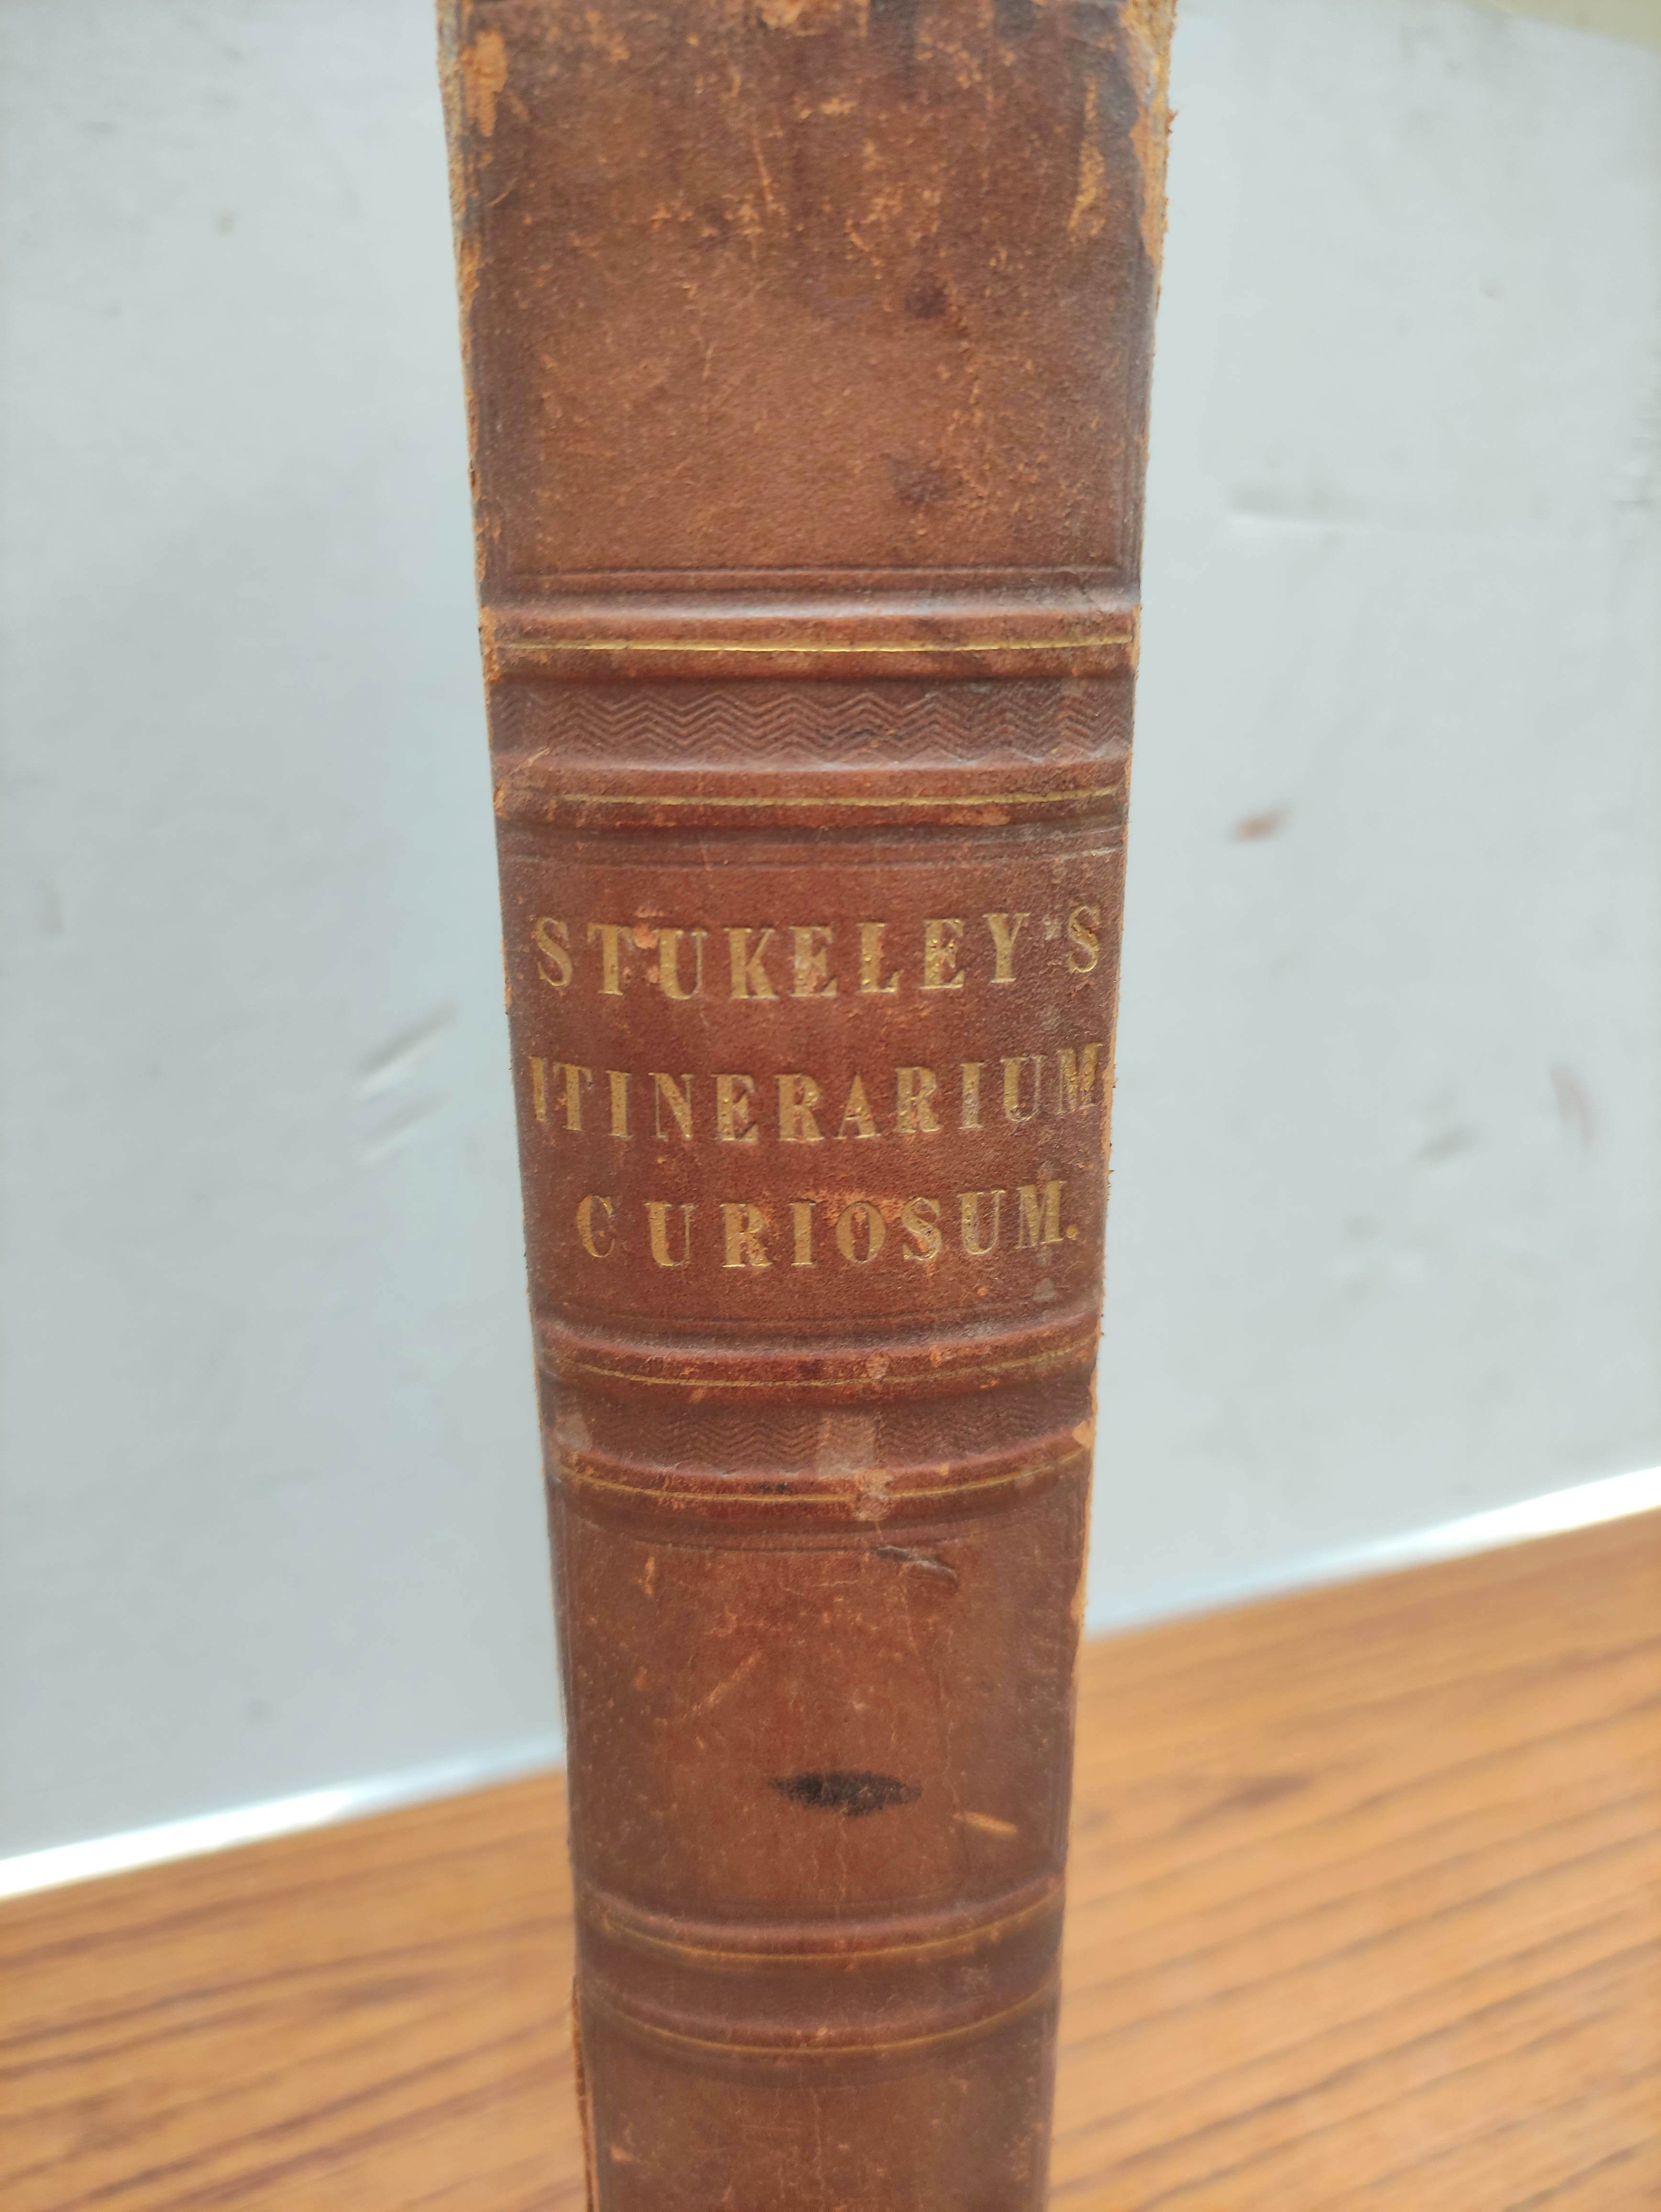 STUKELEY WILLIAM.Itinerarium Curiosum or An Account of the Antiquities & Remarkable Curiousities - Image 3 of 10